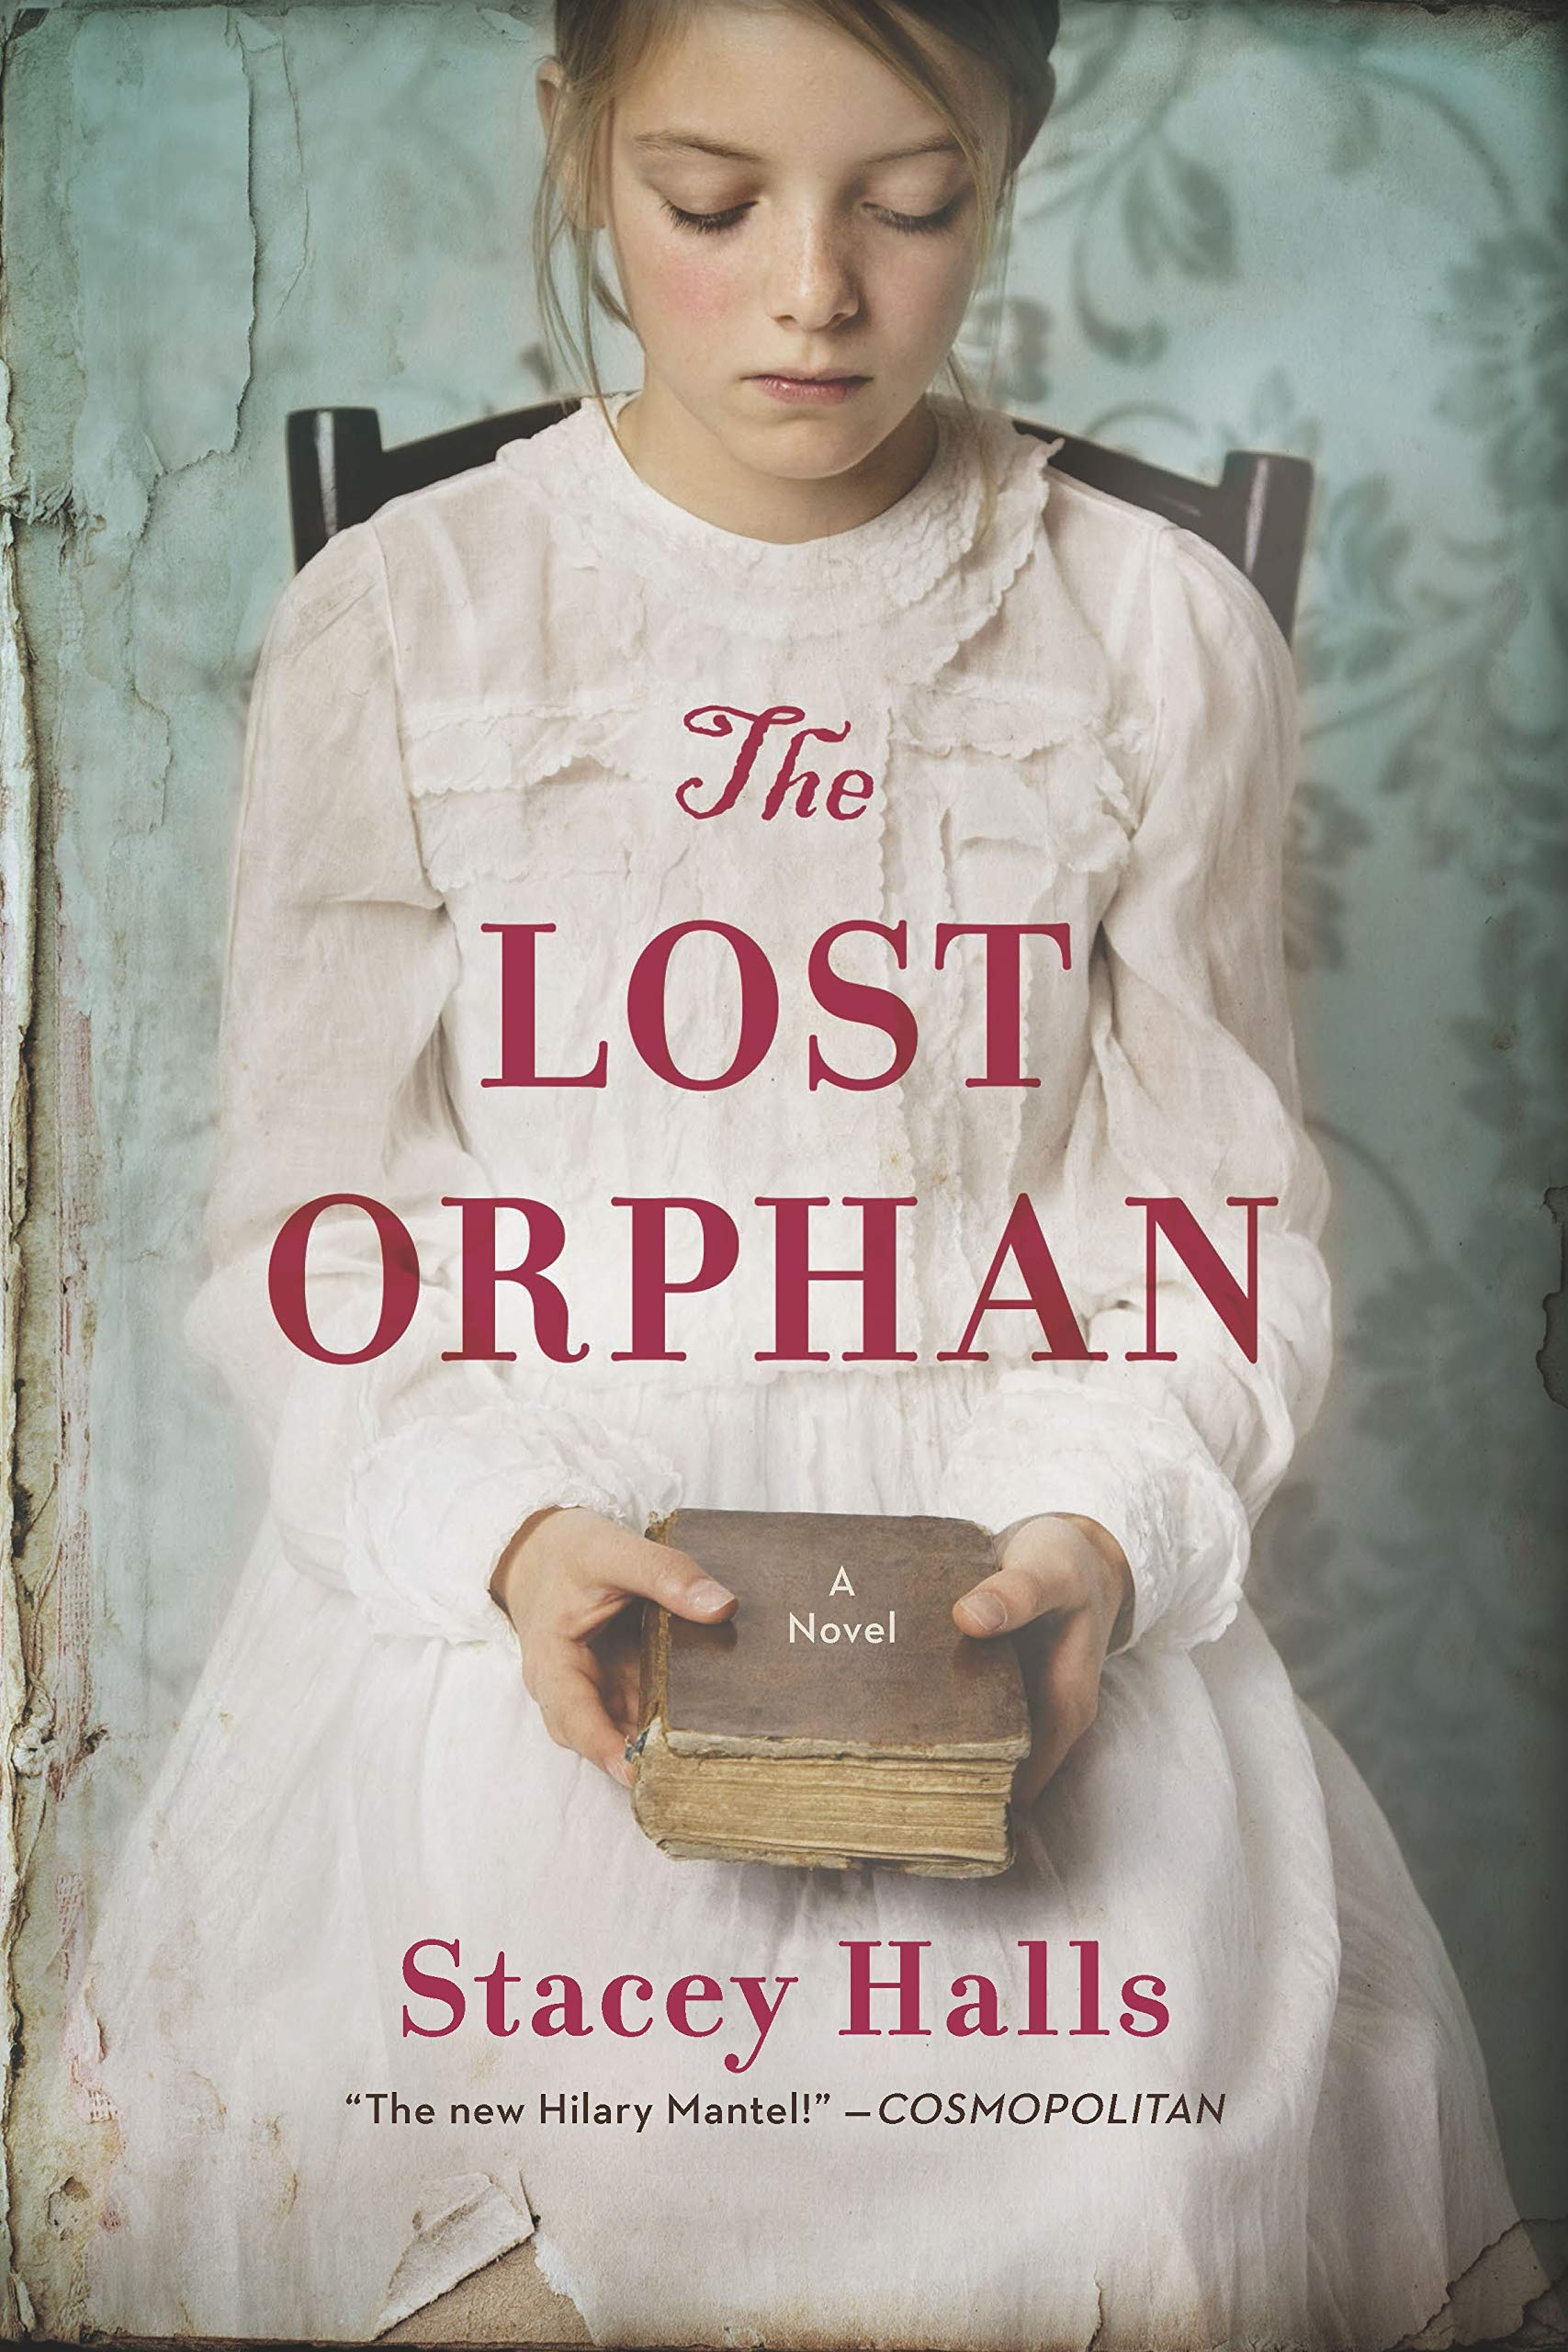 The Lost Orphan Synopsis